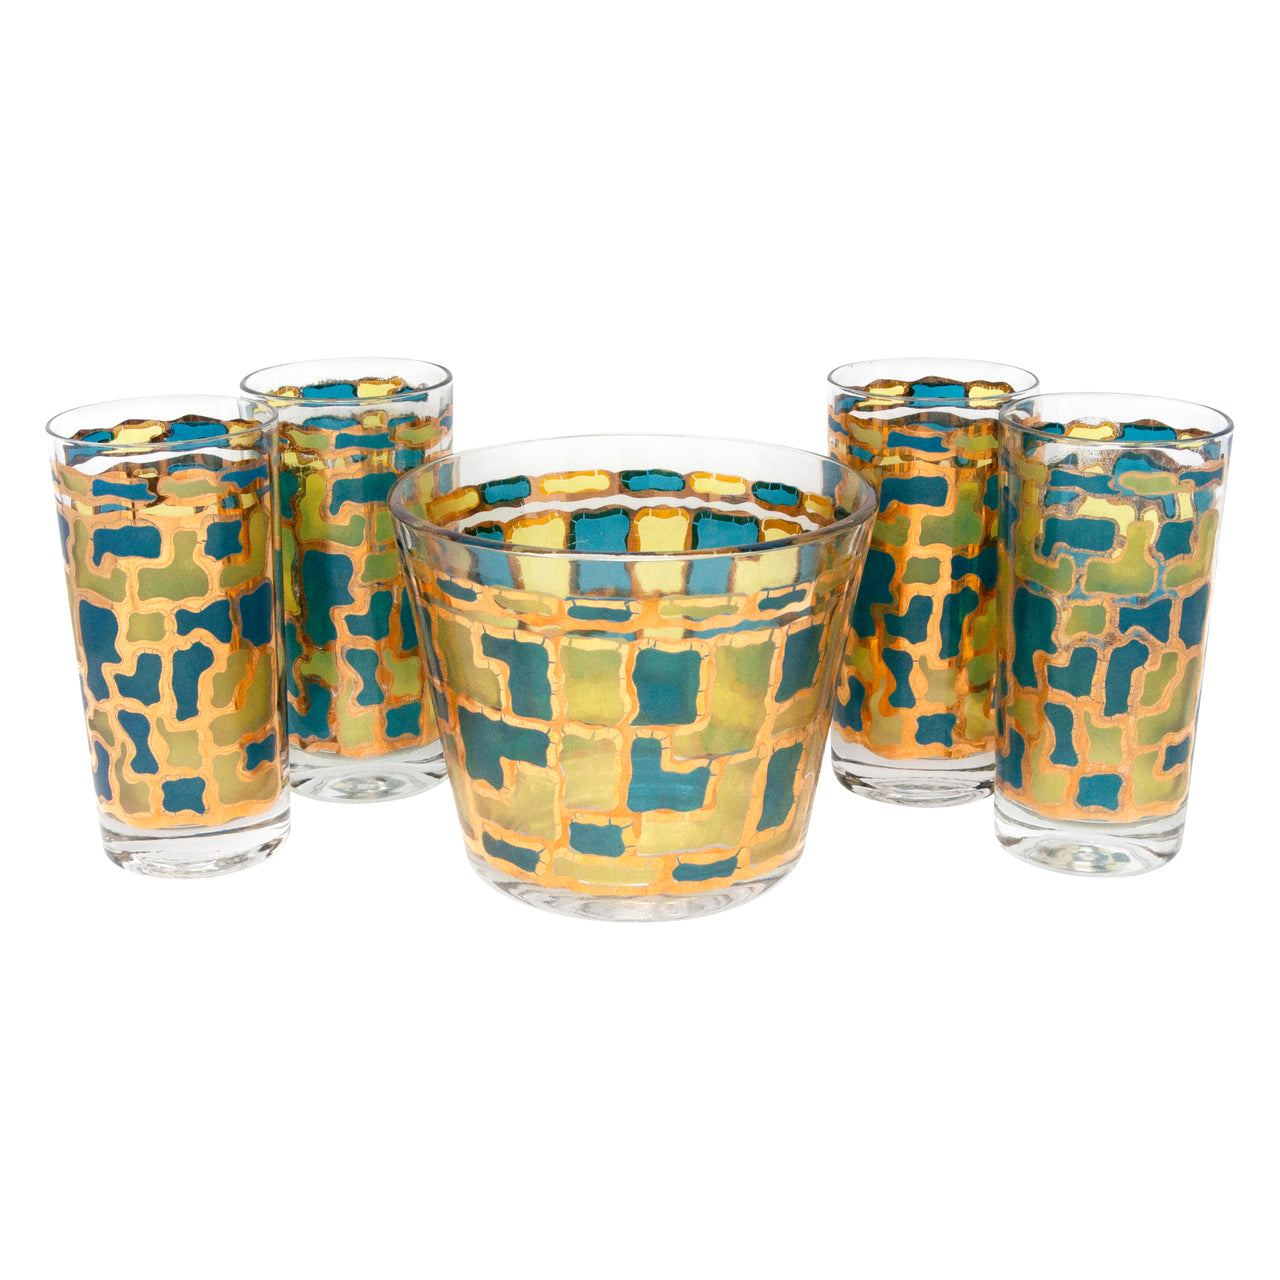 Vintage Multi Color Stained Glass Ice Bucket Cocktail Set | The Hour Shop